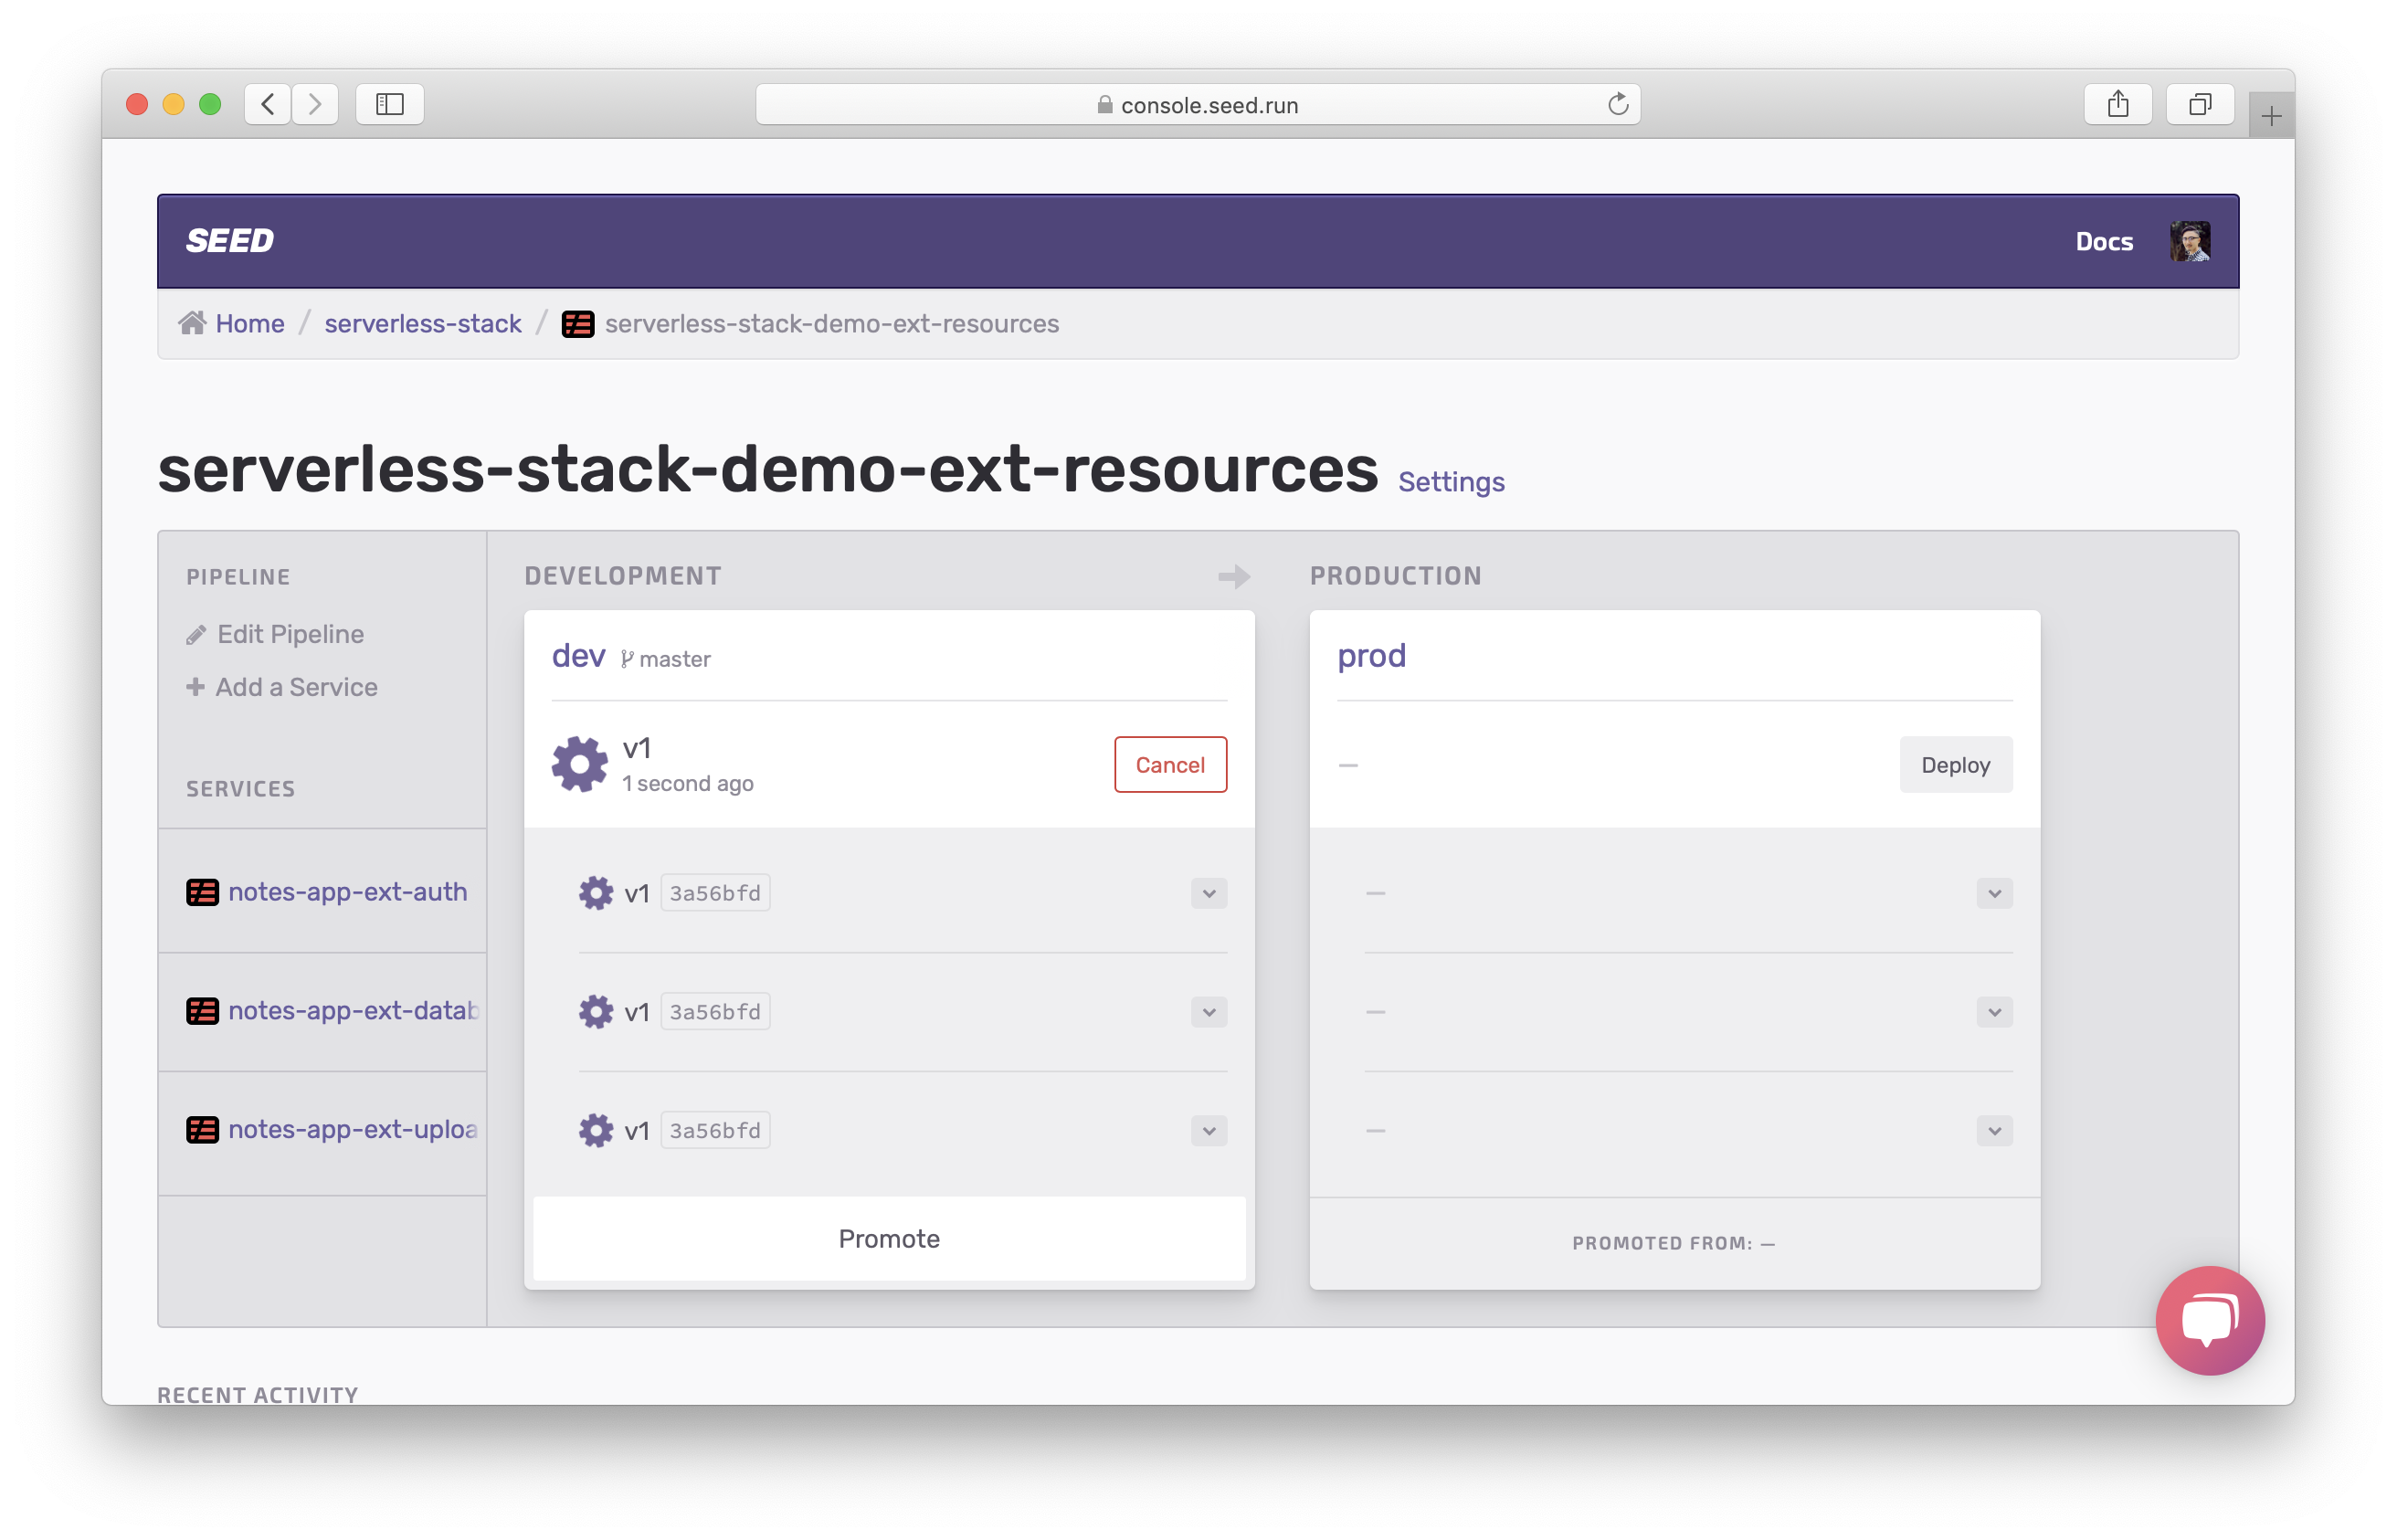 Show services are deploying in dev stage